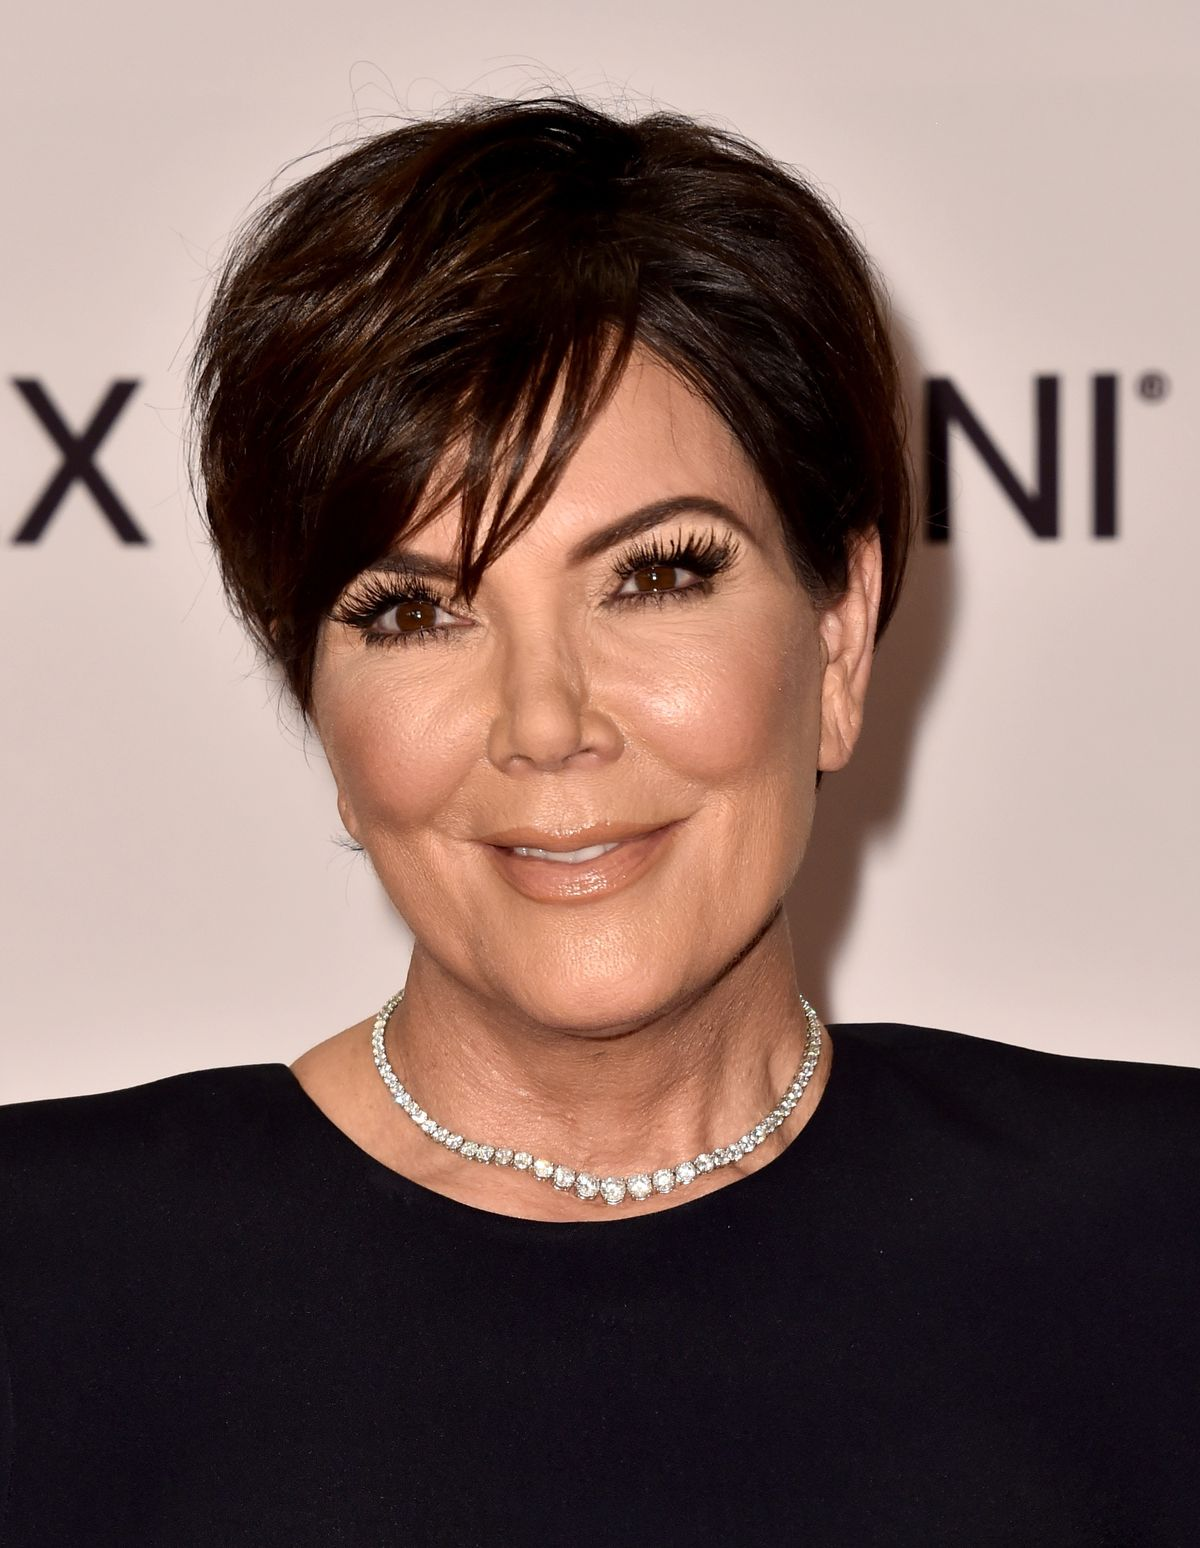 Kris Jenner attends the 24th Annual Race To Erase MS Gala at The Beverly Hilton Hotel on May 5, 2017 in Beverly Hills, California. | Photo: Getty Images